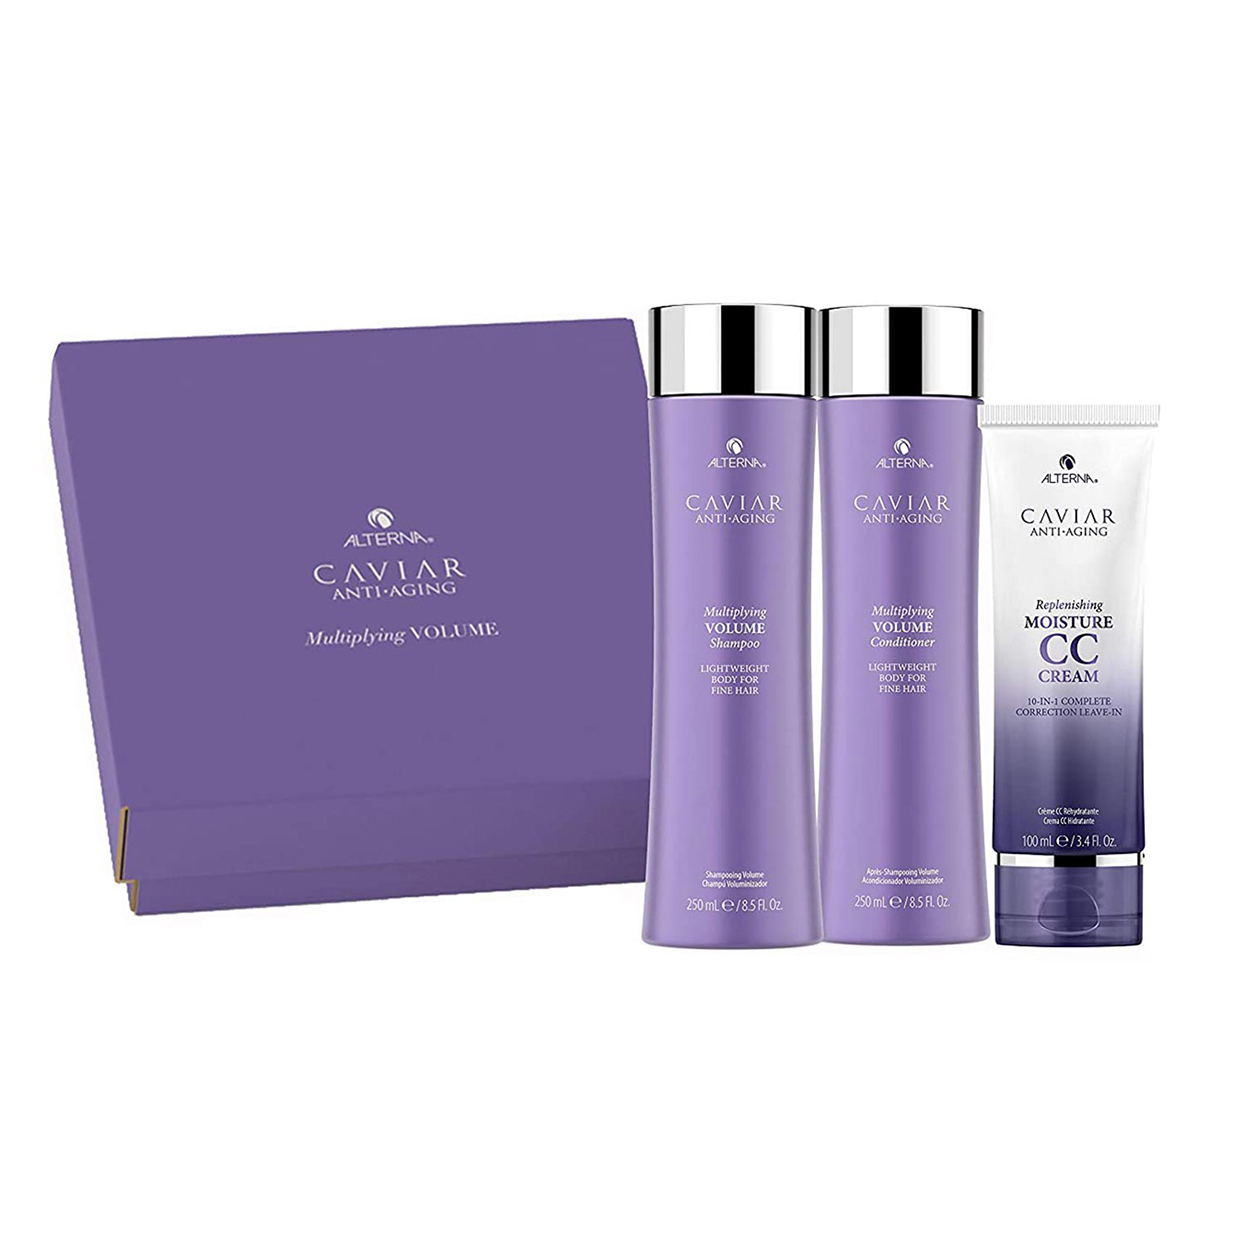 Alterna Caviar Anti-Aging Multiplying Volume Shampoo and Conditioner Kit